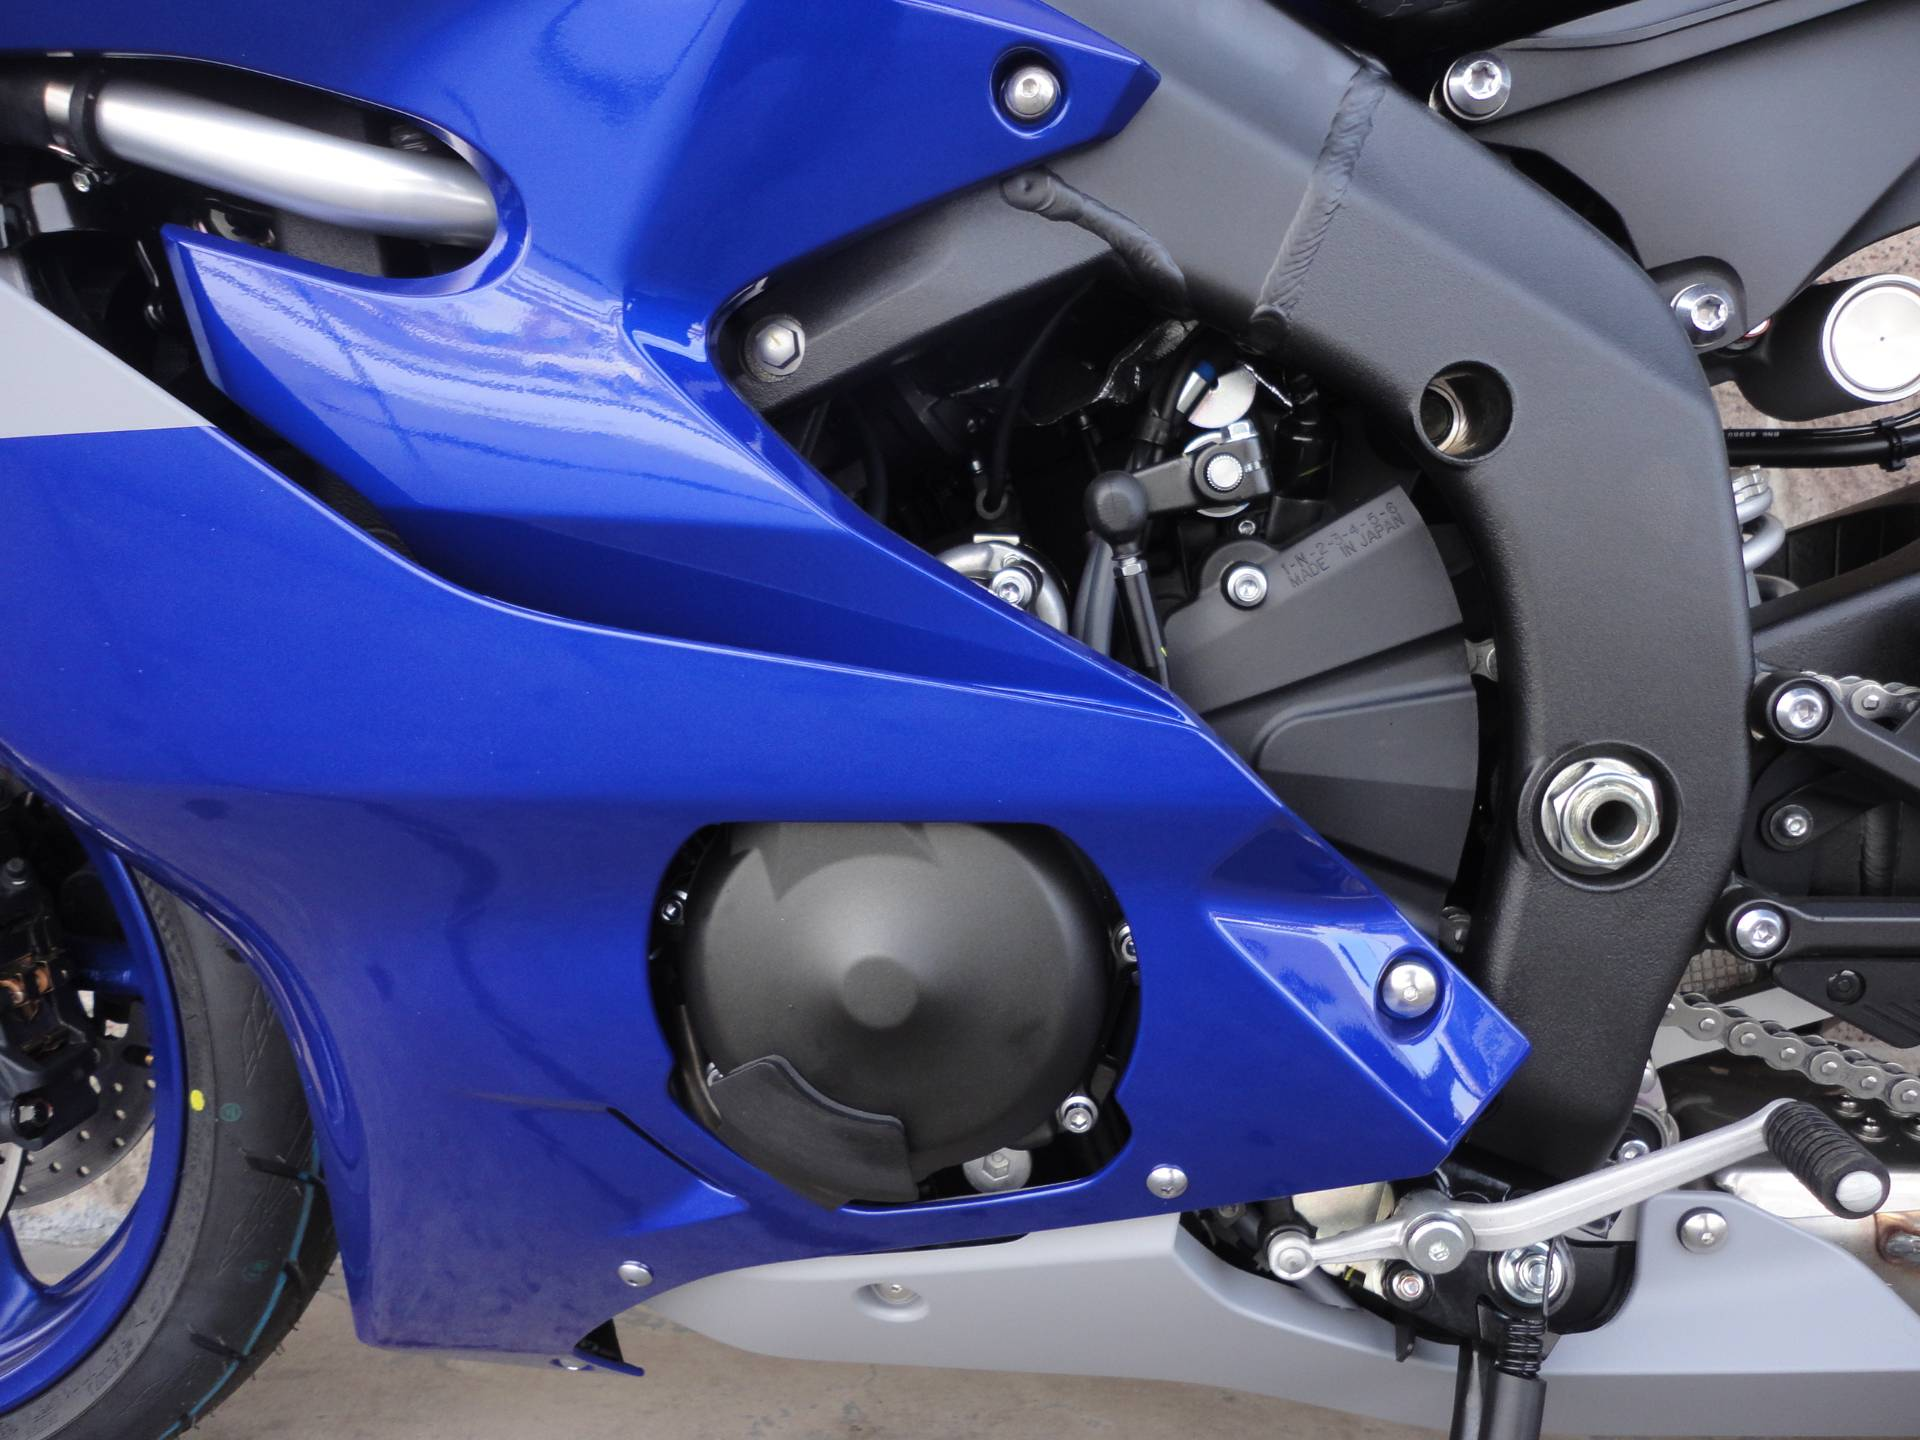 2020 Yamaha YZF-R6 in Denver, Colorado - Photo 5